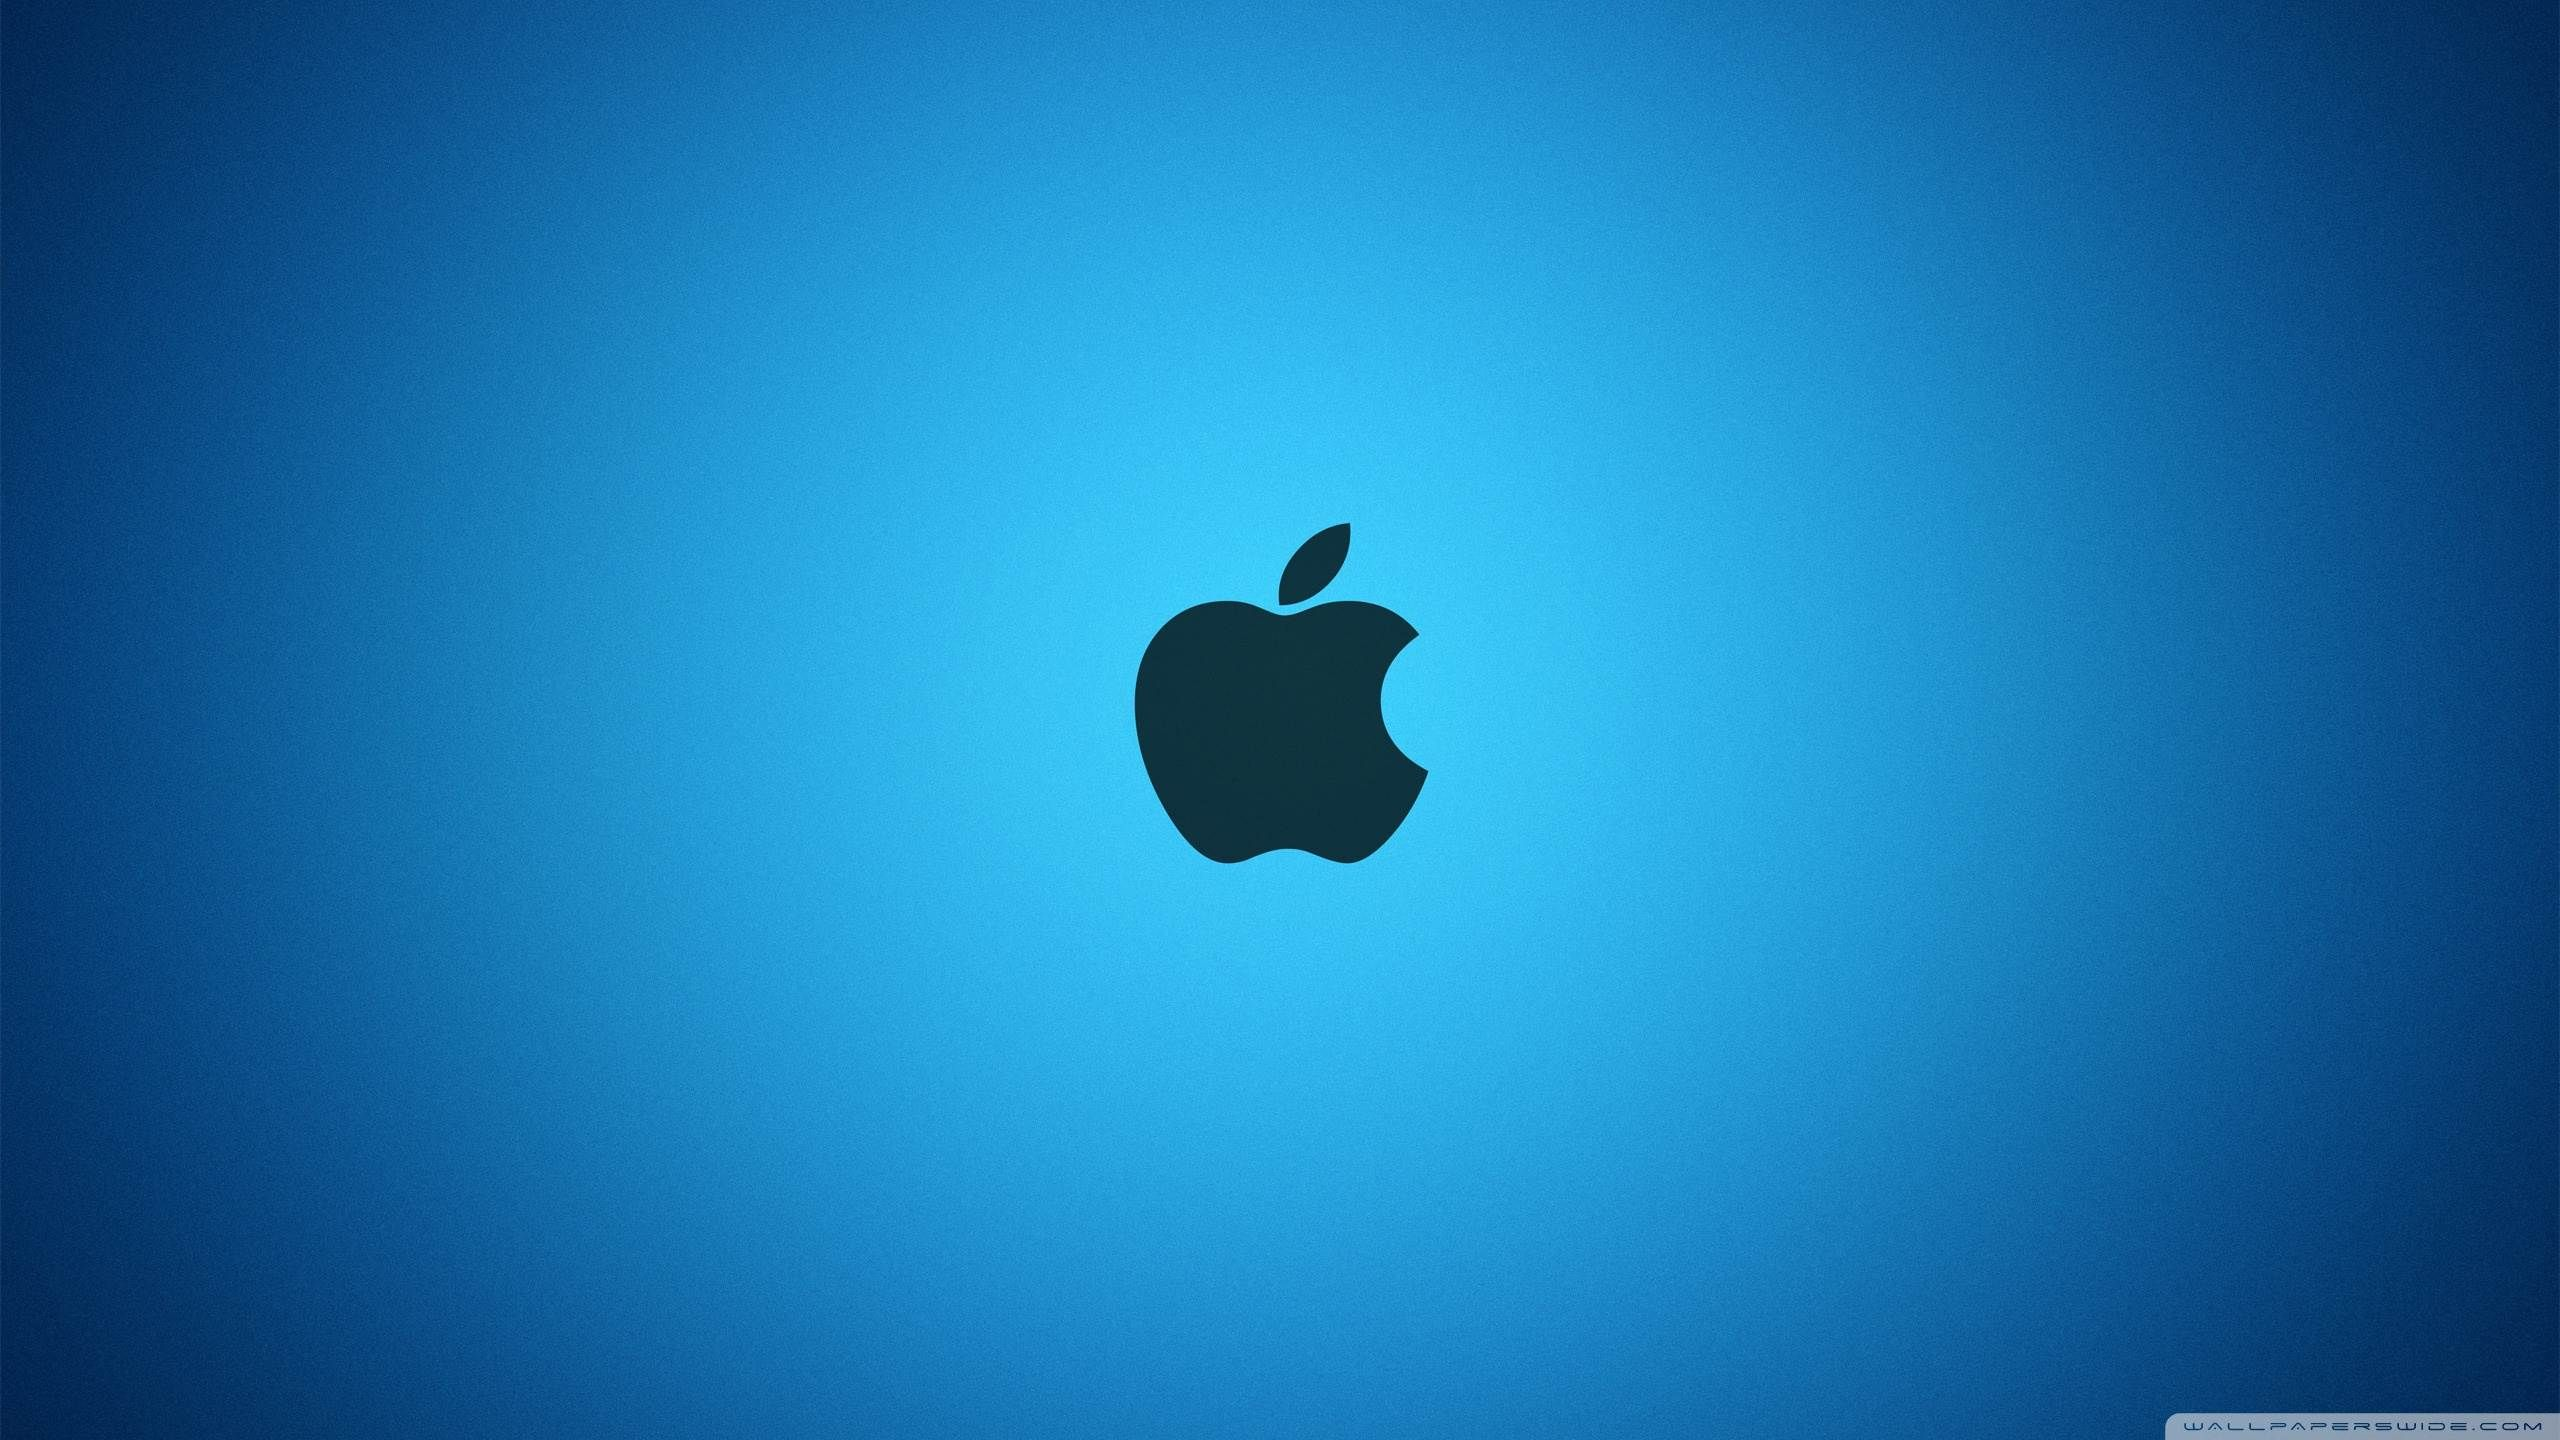 apple iphone wallpapers hd 750×1334 apple | adorable wallpapers